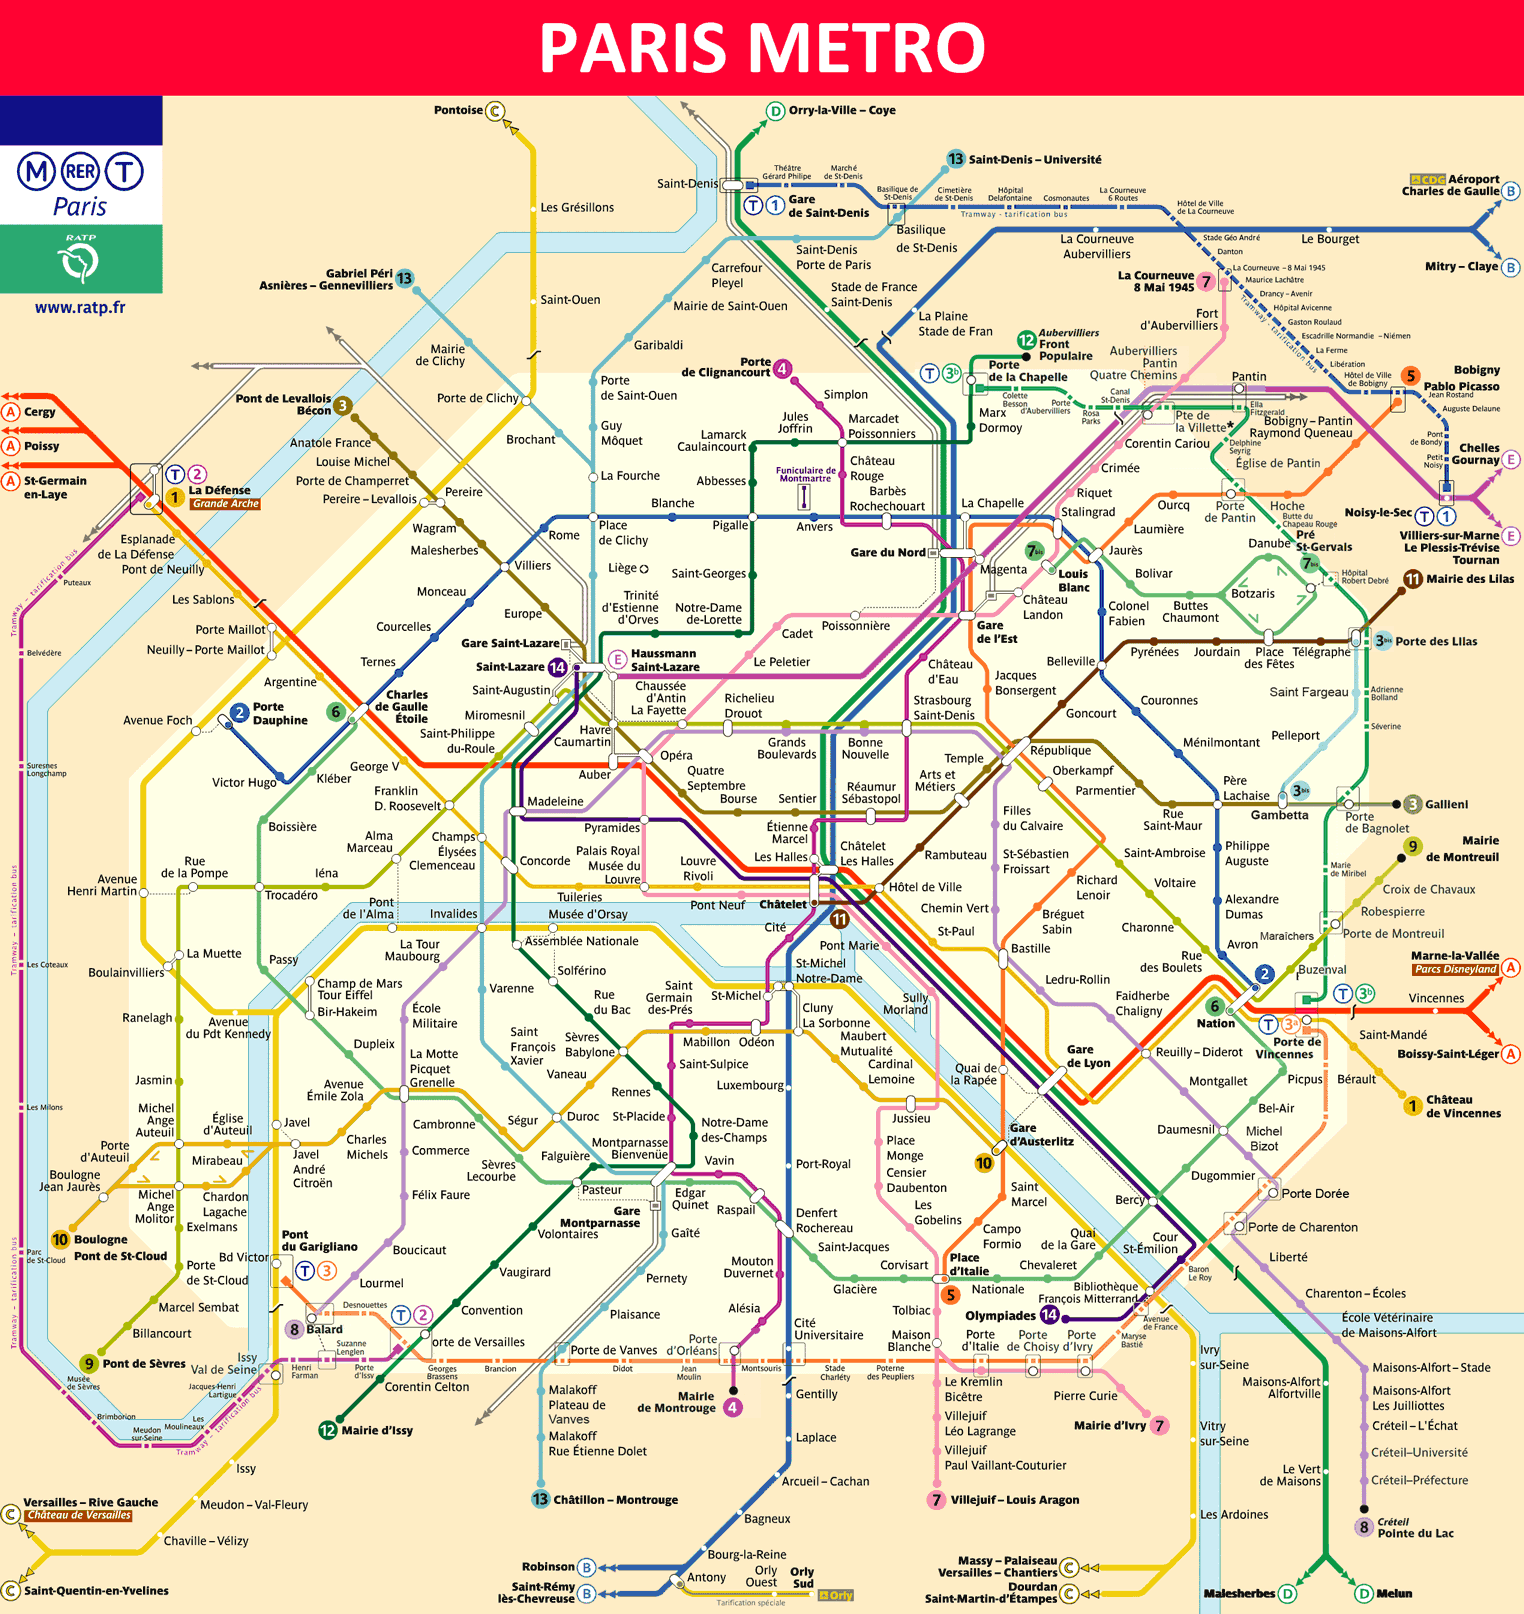 Map Of Paris France 6th Arrondissement.Paris Metro Map 2019 Timetable Ticket Price Tourist Information